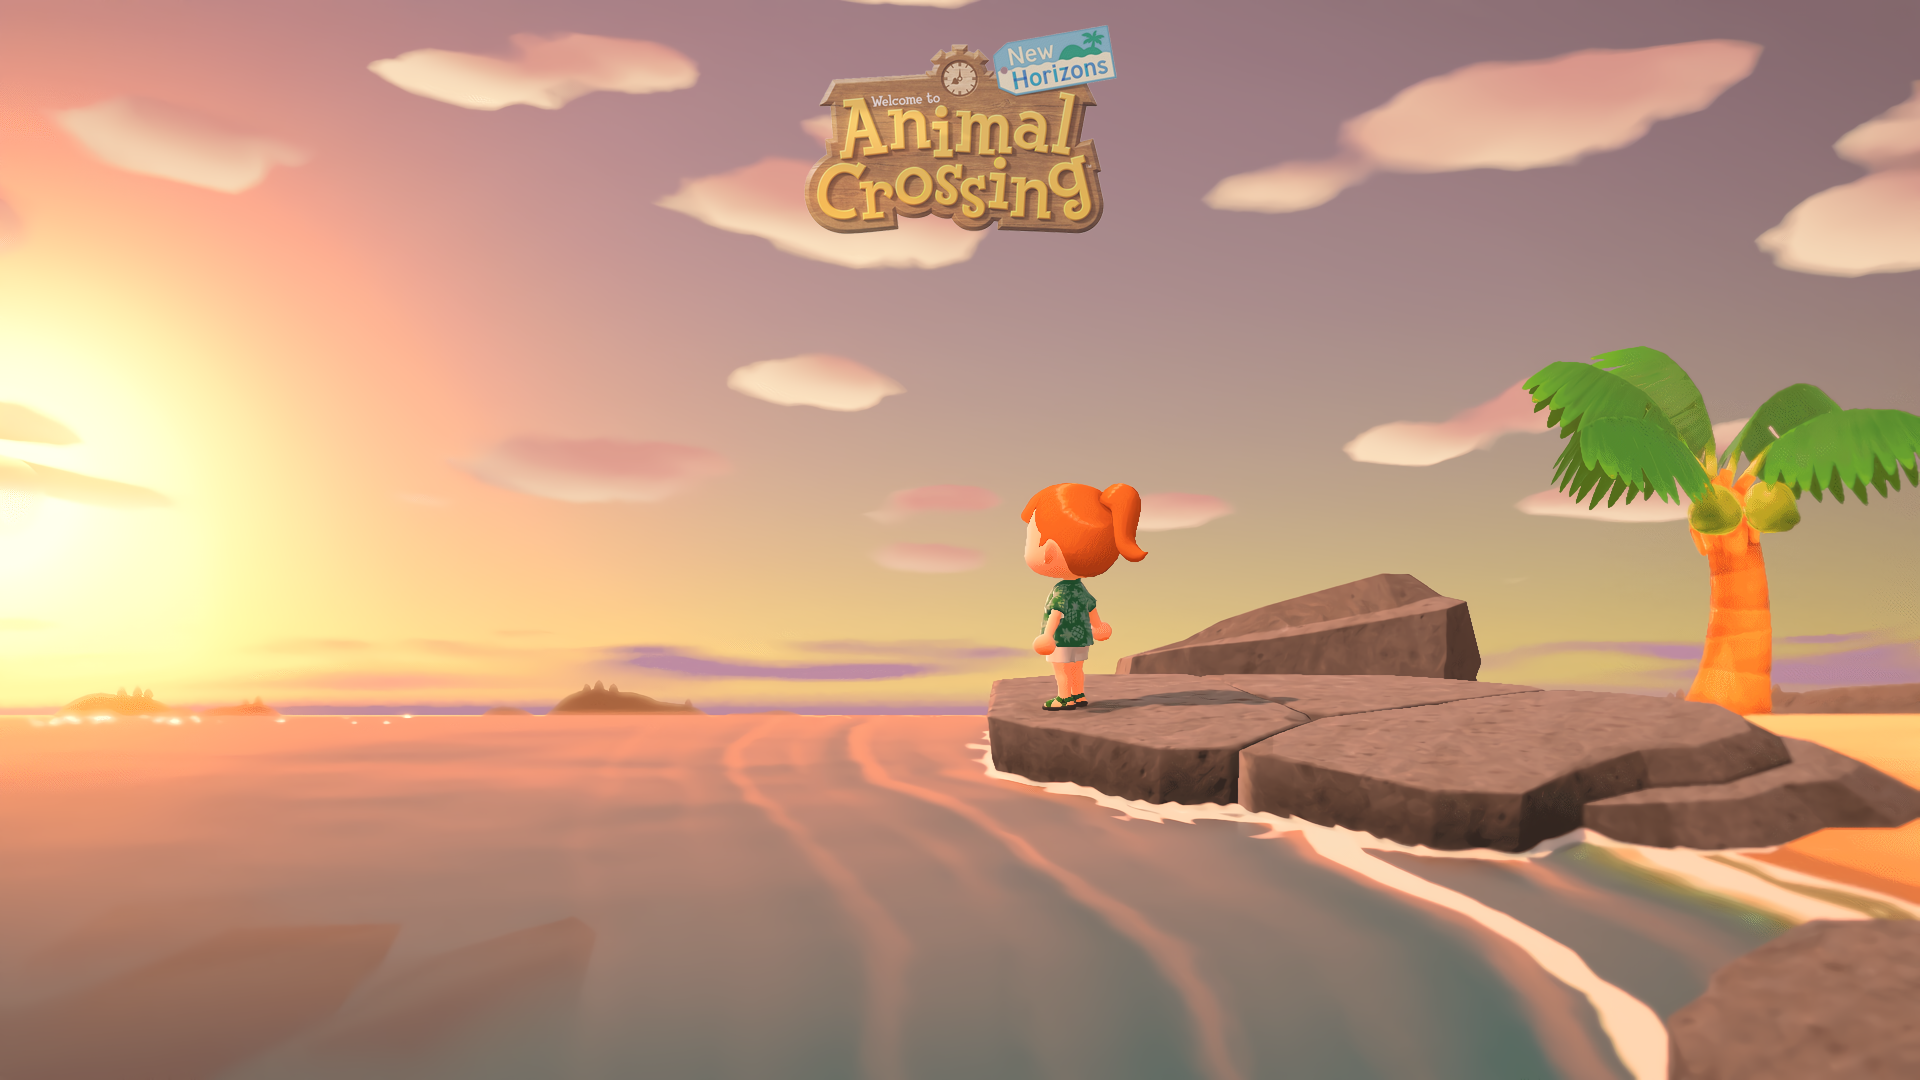 animal crossing new horizons video game wallpaper 69262